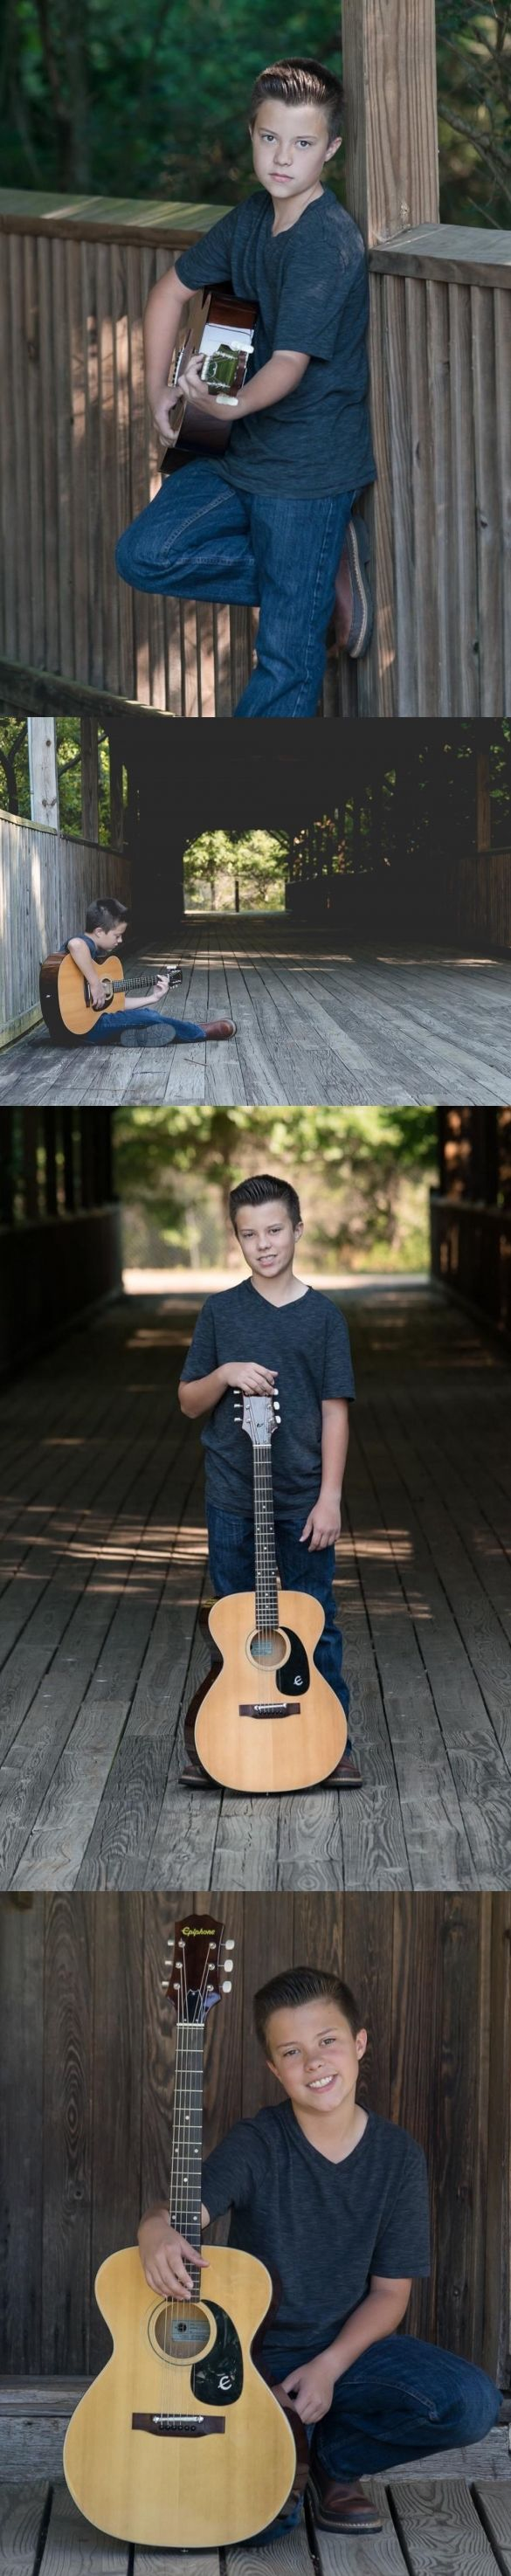 Boy with acoustic guitar photography